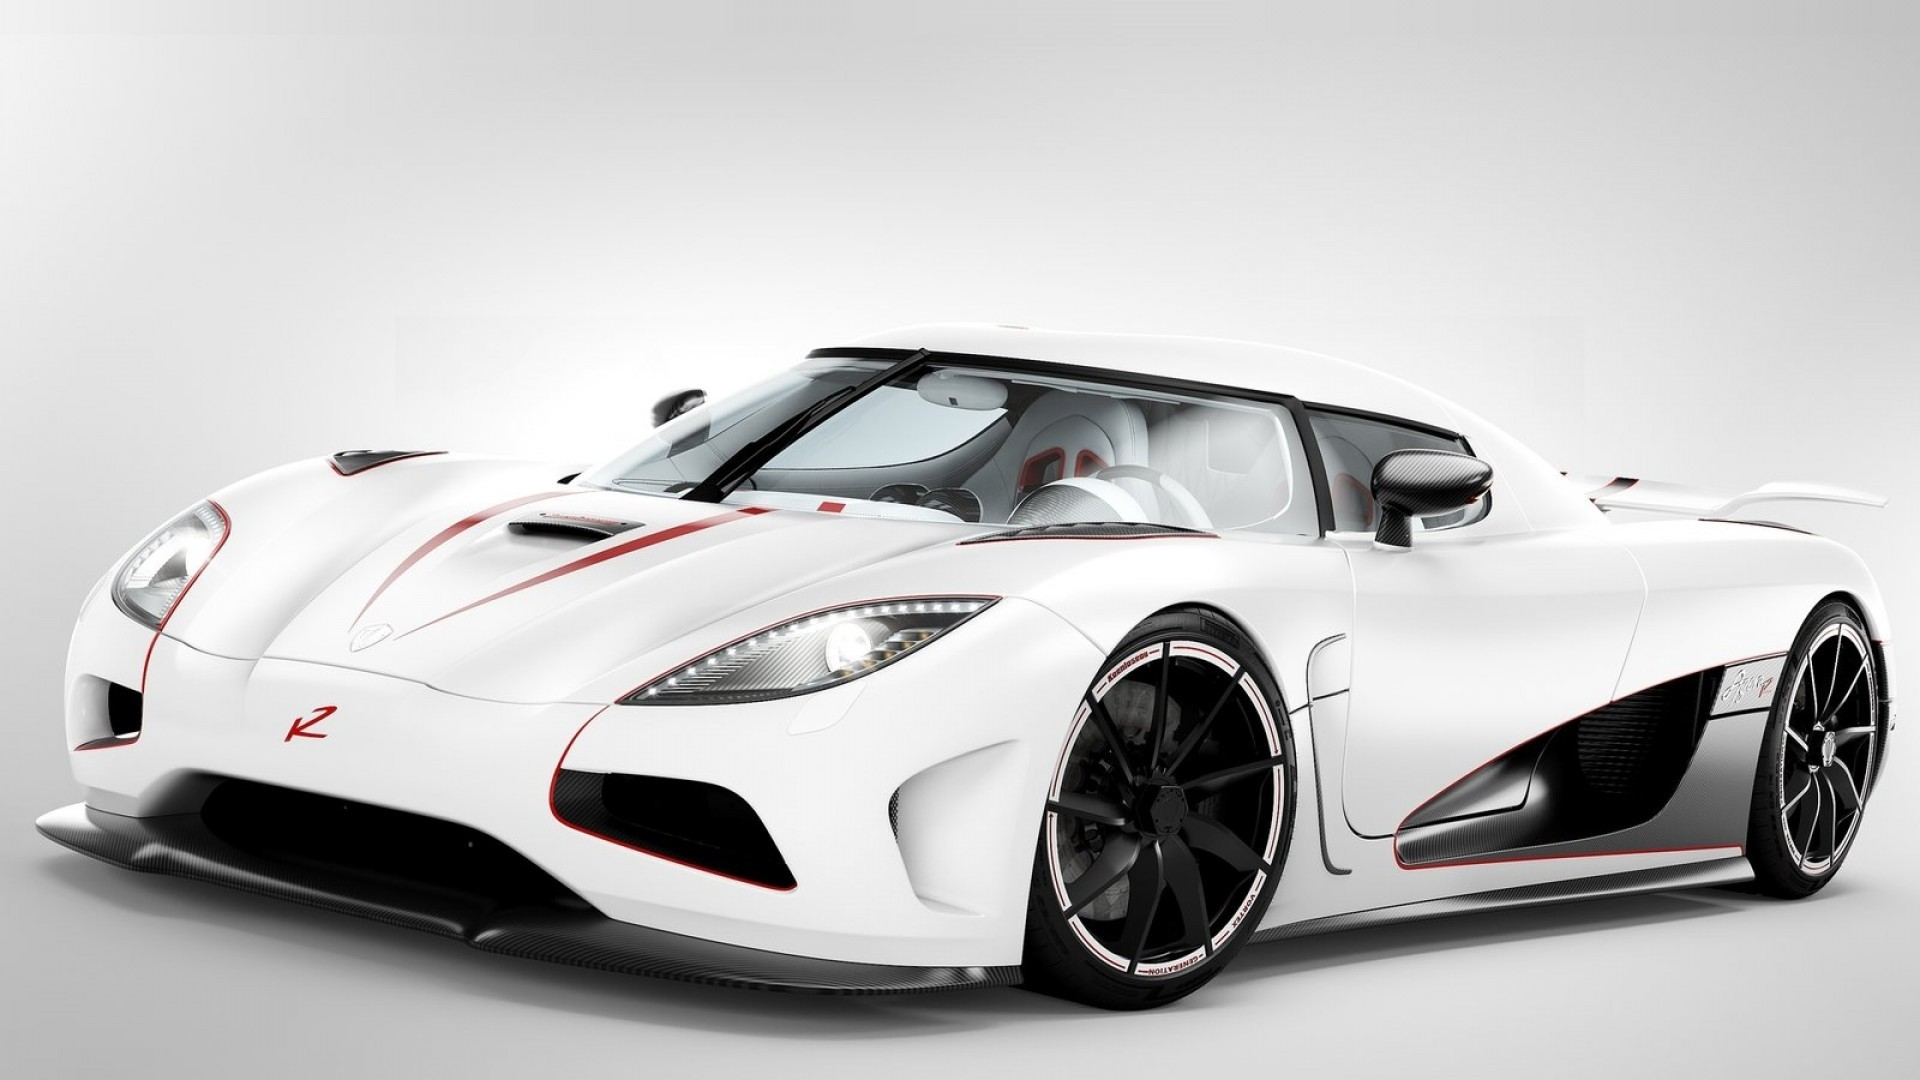 Nawak-Fabrication-Cars-Koenigsegg-Agera-R-White-Cars-Koenigsegg-Agera-New-Hd-Wallpaper-